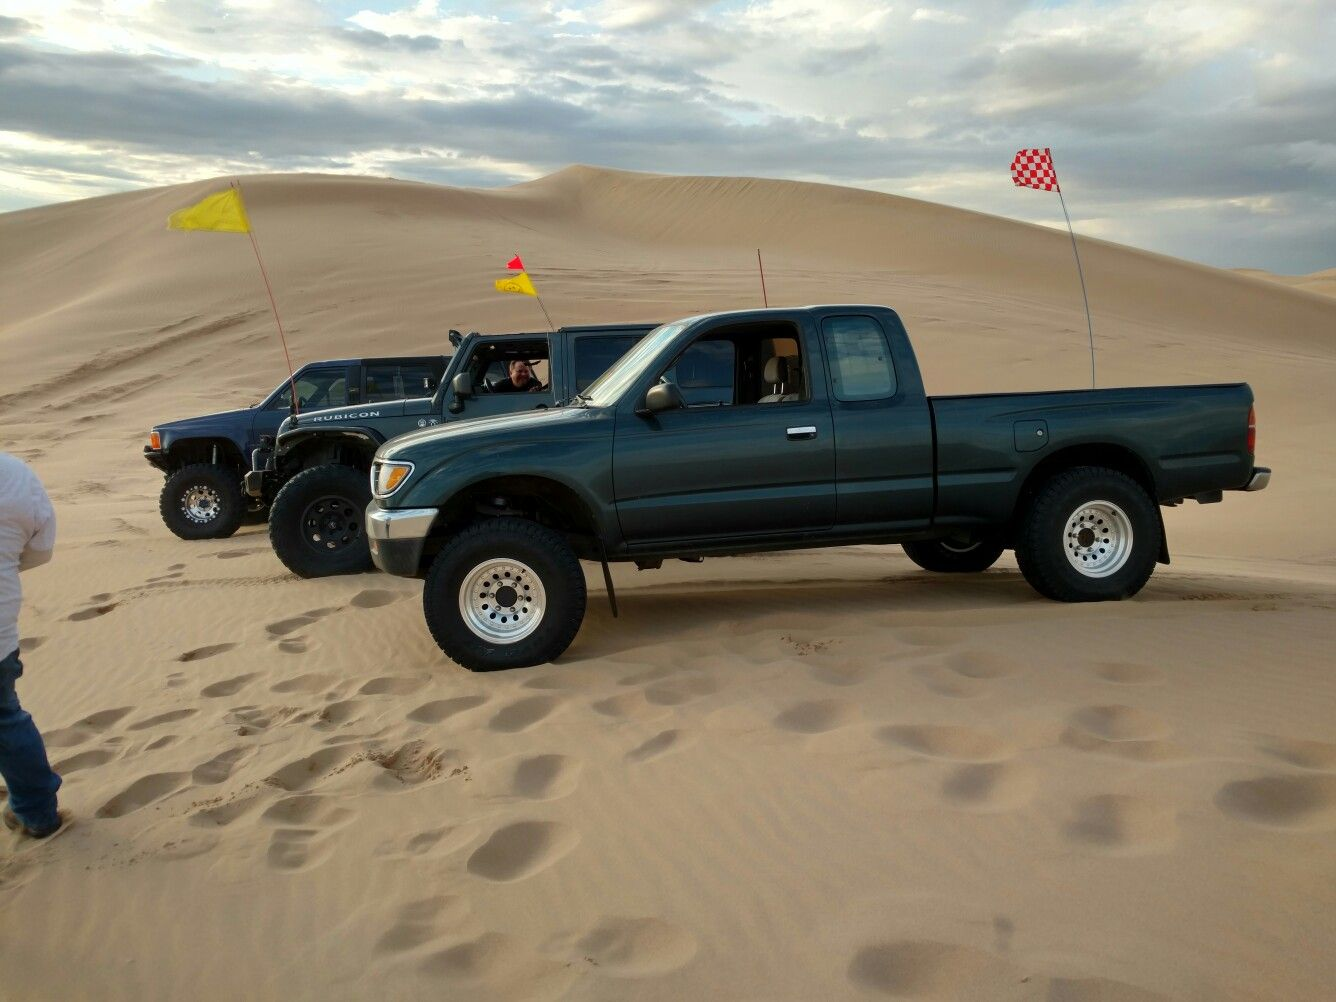 small resolution of 1996 toyota tacoma 4x4 in the sand dunes glamis california